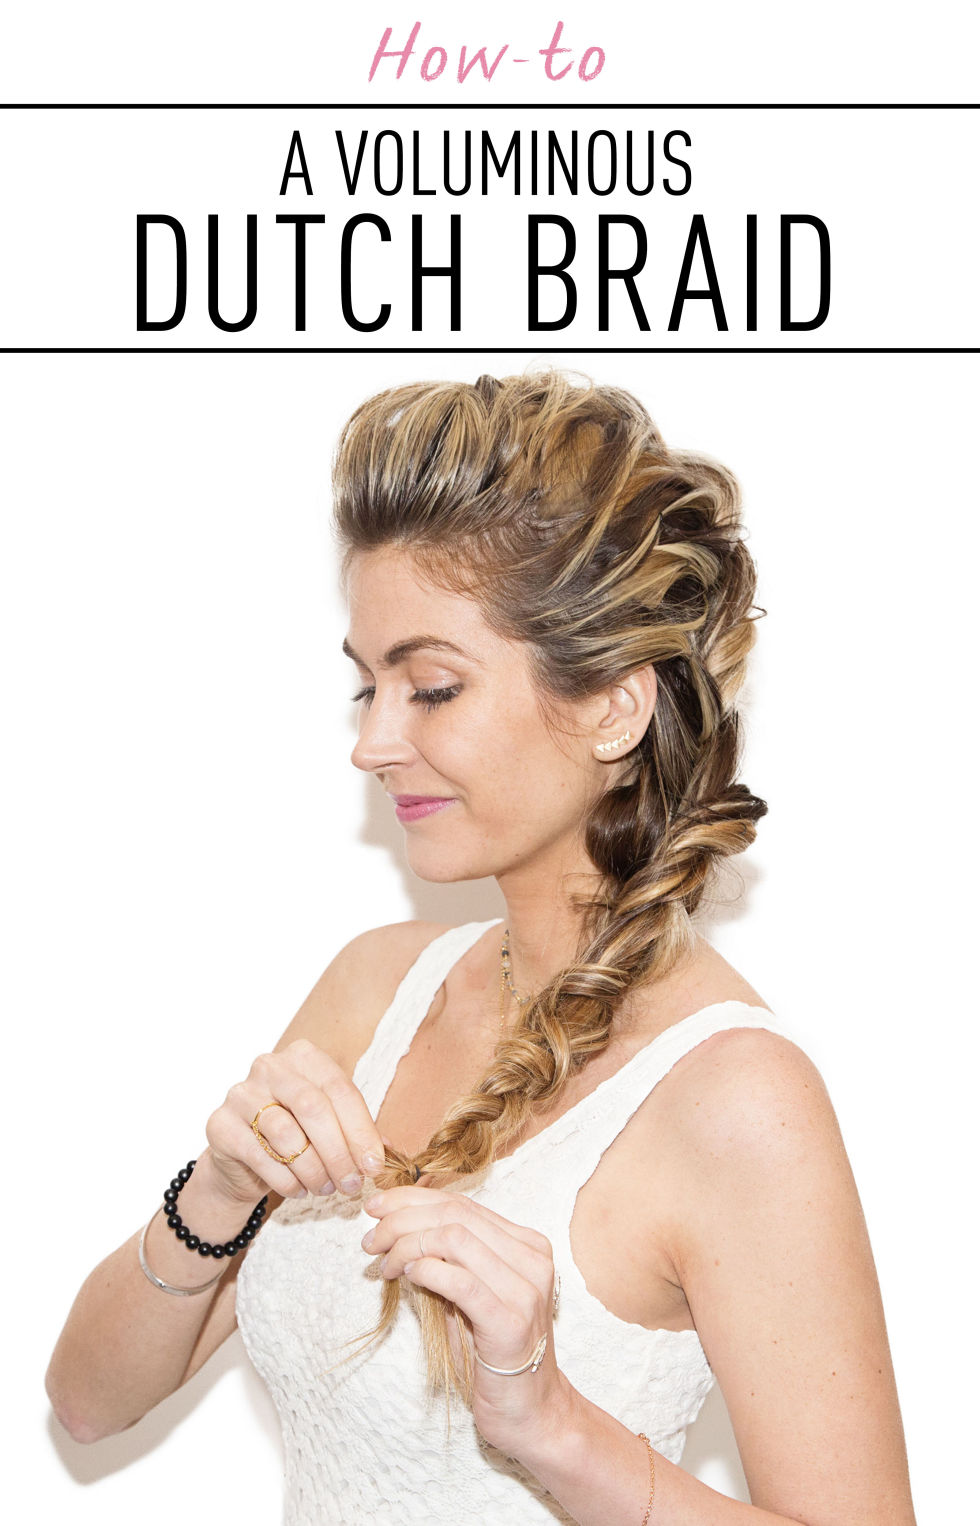 Your New Favorite Braid Will Make You Look So Hot